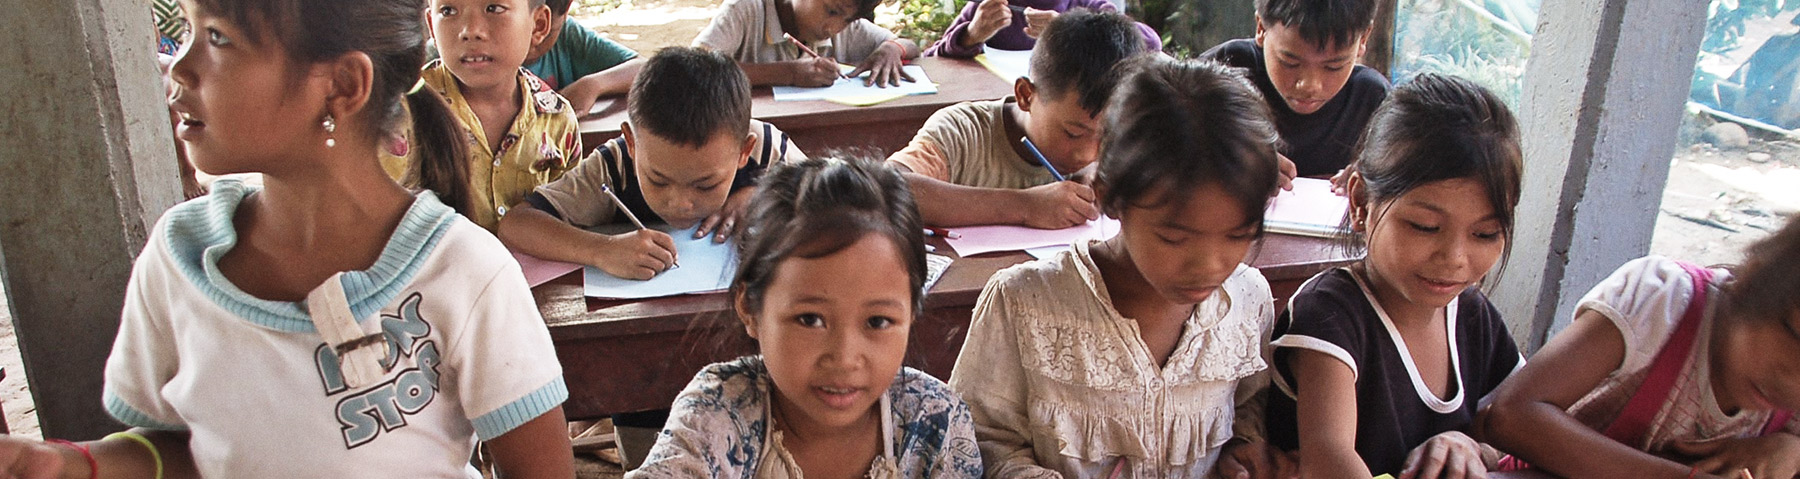 Contact Opportunity Cambodia - School Children Learning